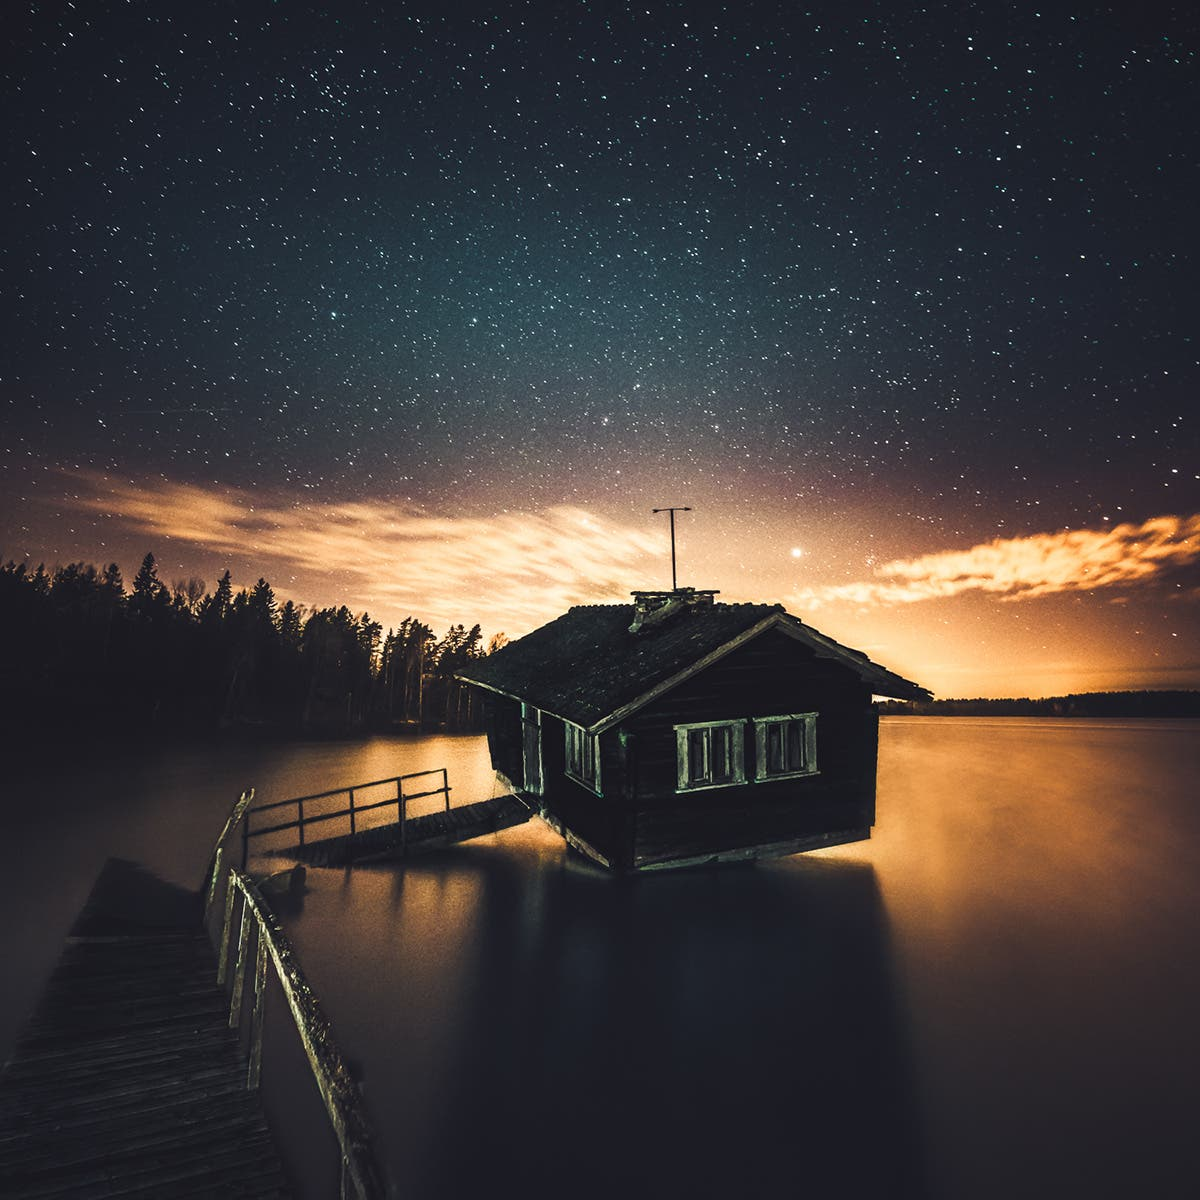 Mikko Lagerstedt's Invisible by Day Series Will Make You Want To Stay Up Tonight